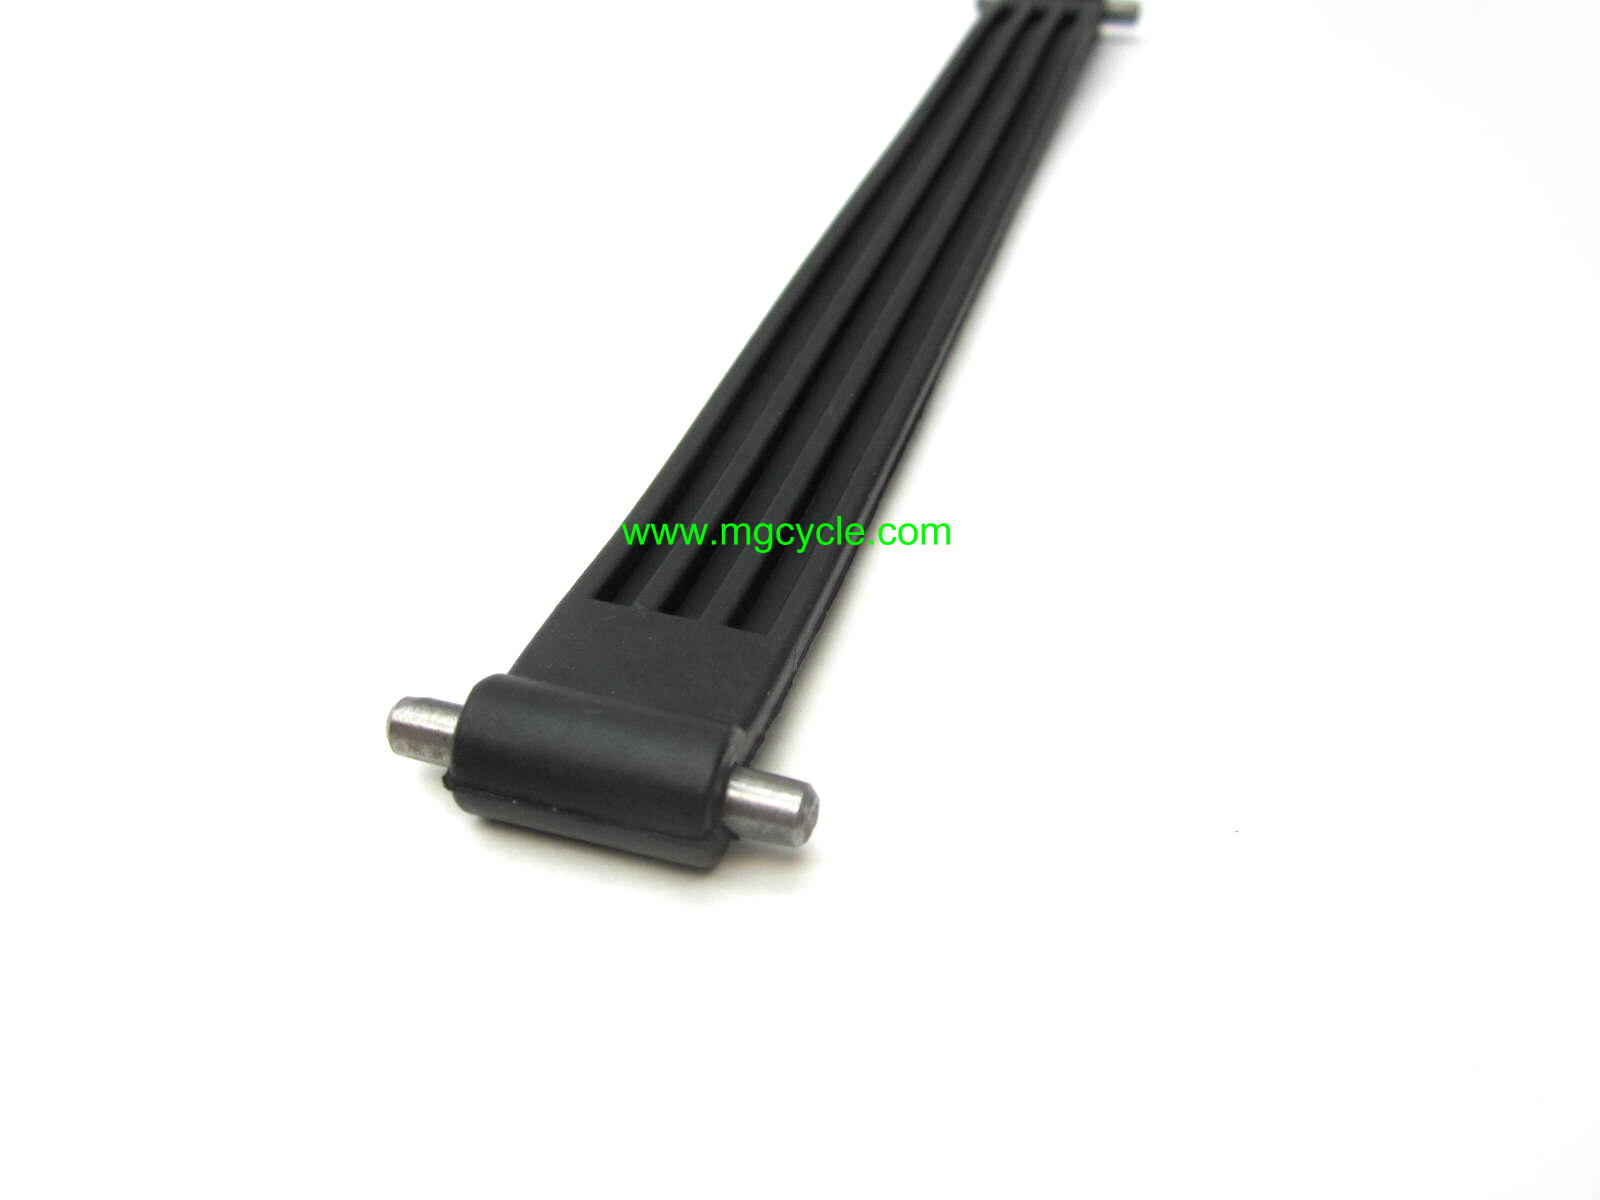 Battery strap for most Ducati bevel twins ~270mm long 069891900